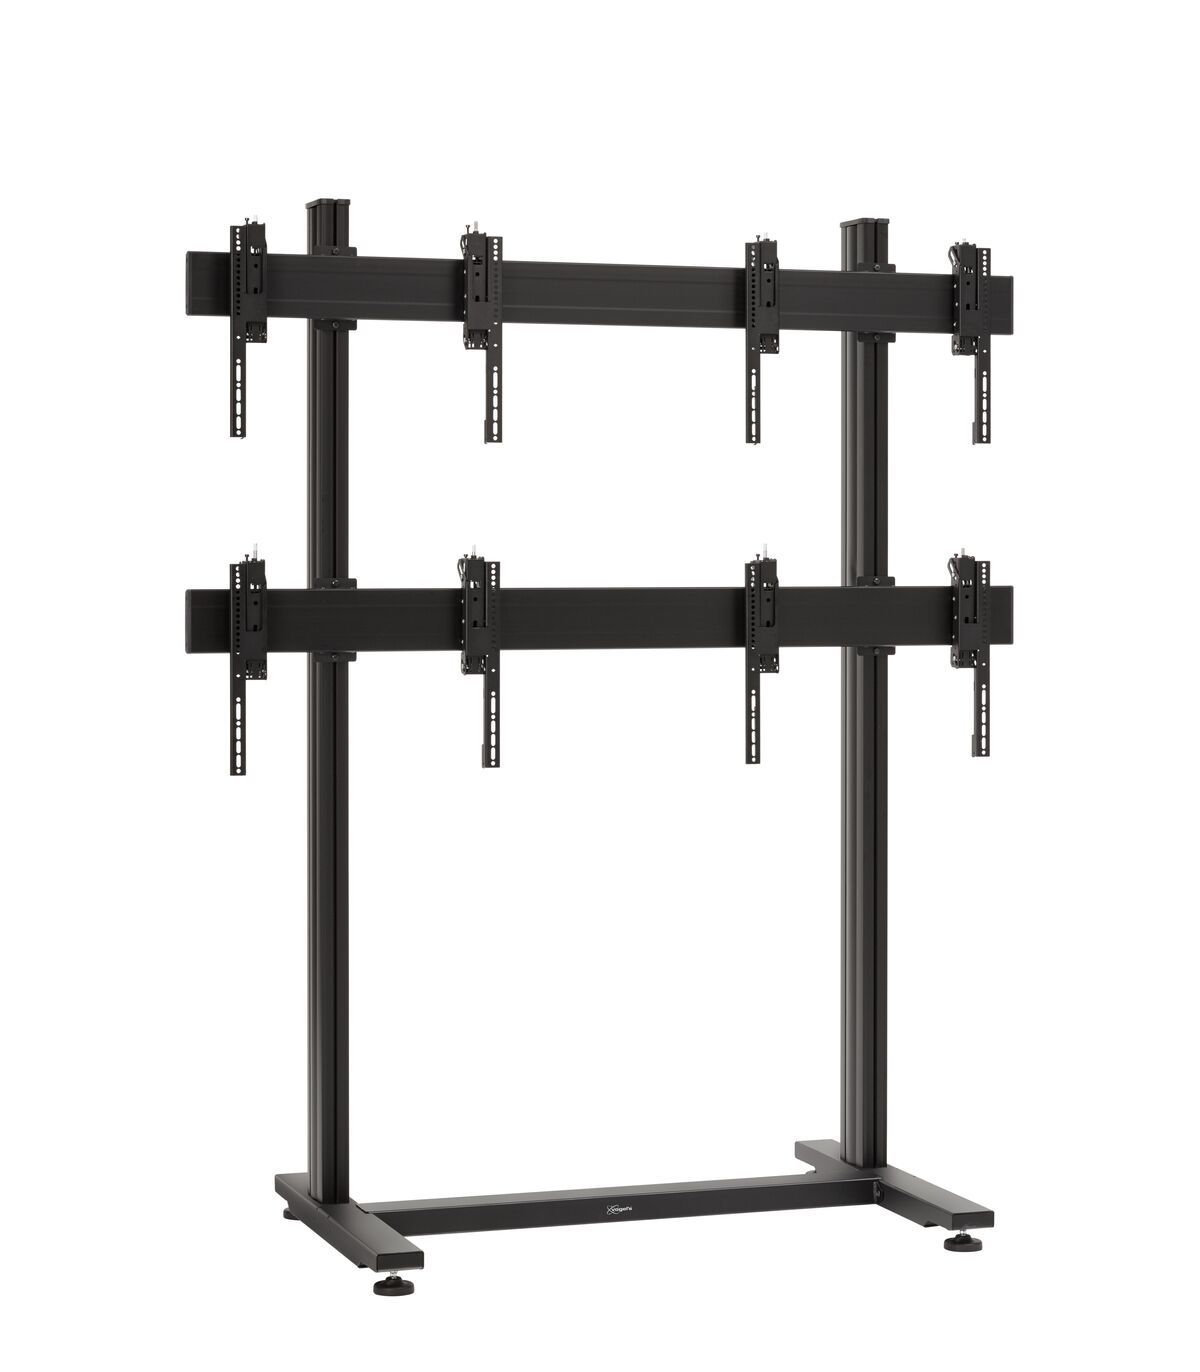 Vogel's FVW2255 Video wall floor stand 2x2 - Product